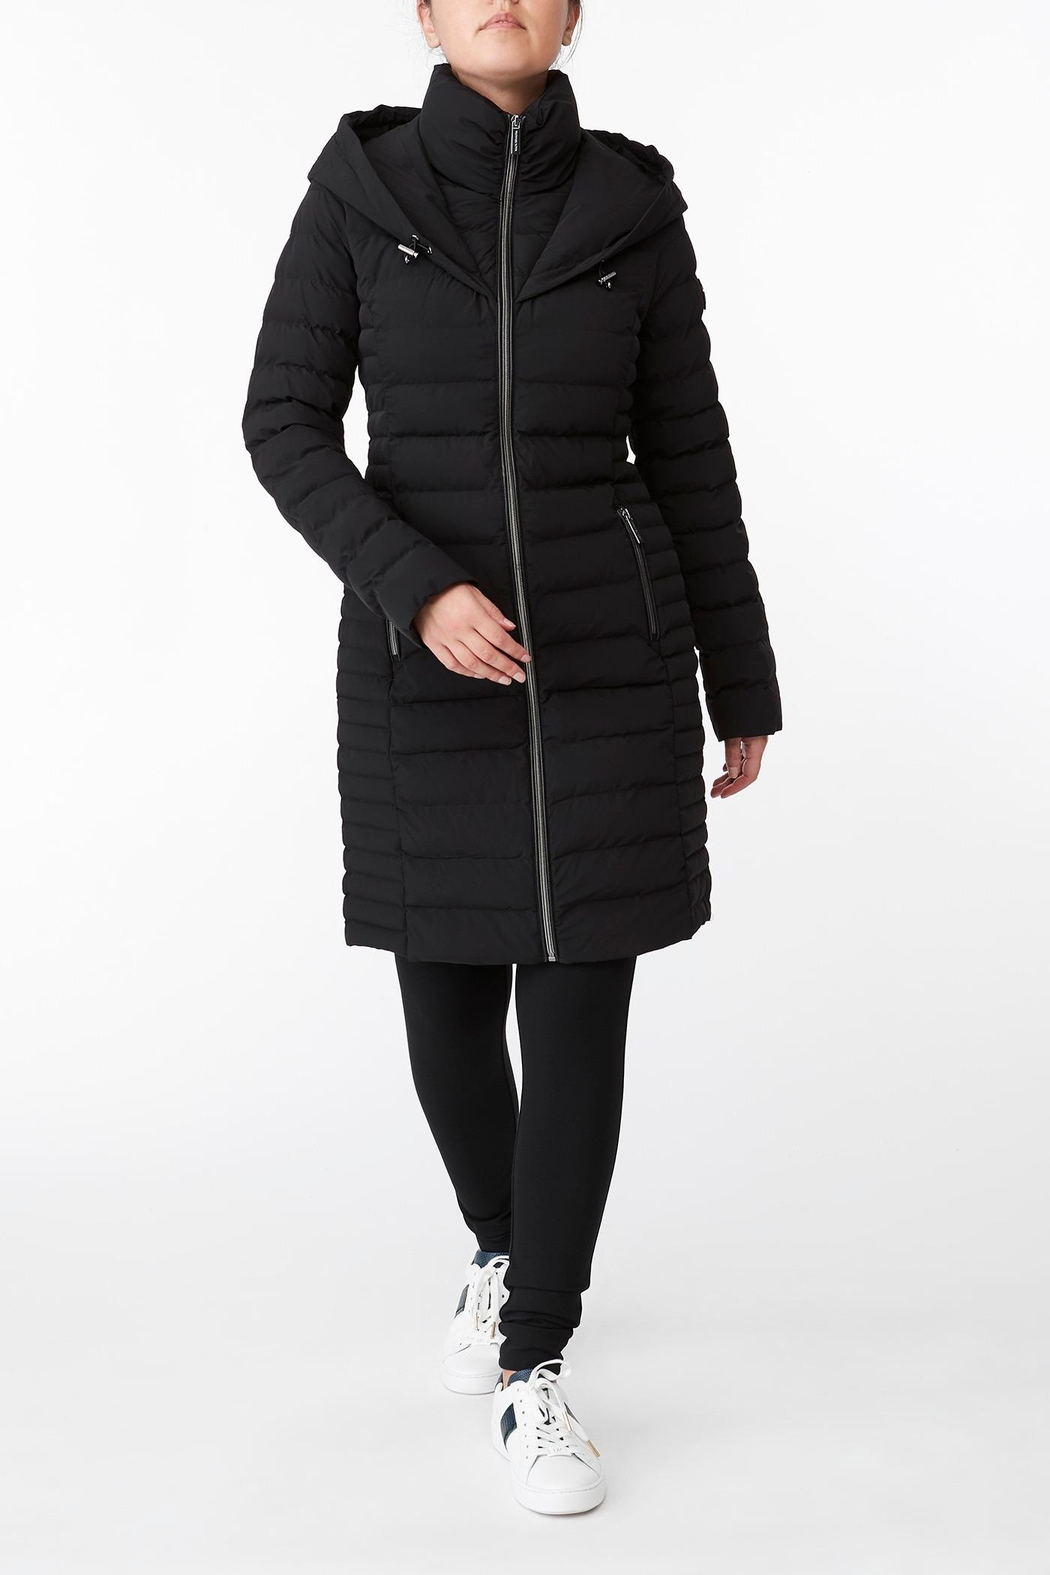 Michael Kors Quilted Stretch Nylon Puffer Coat - Main Image